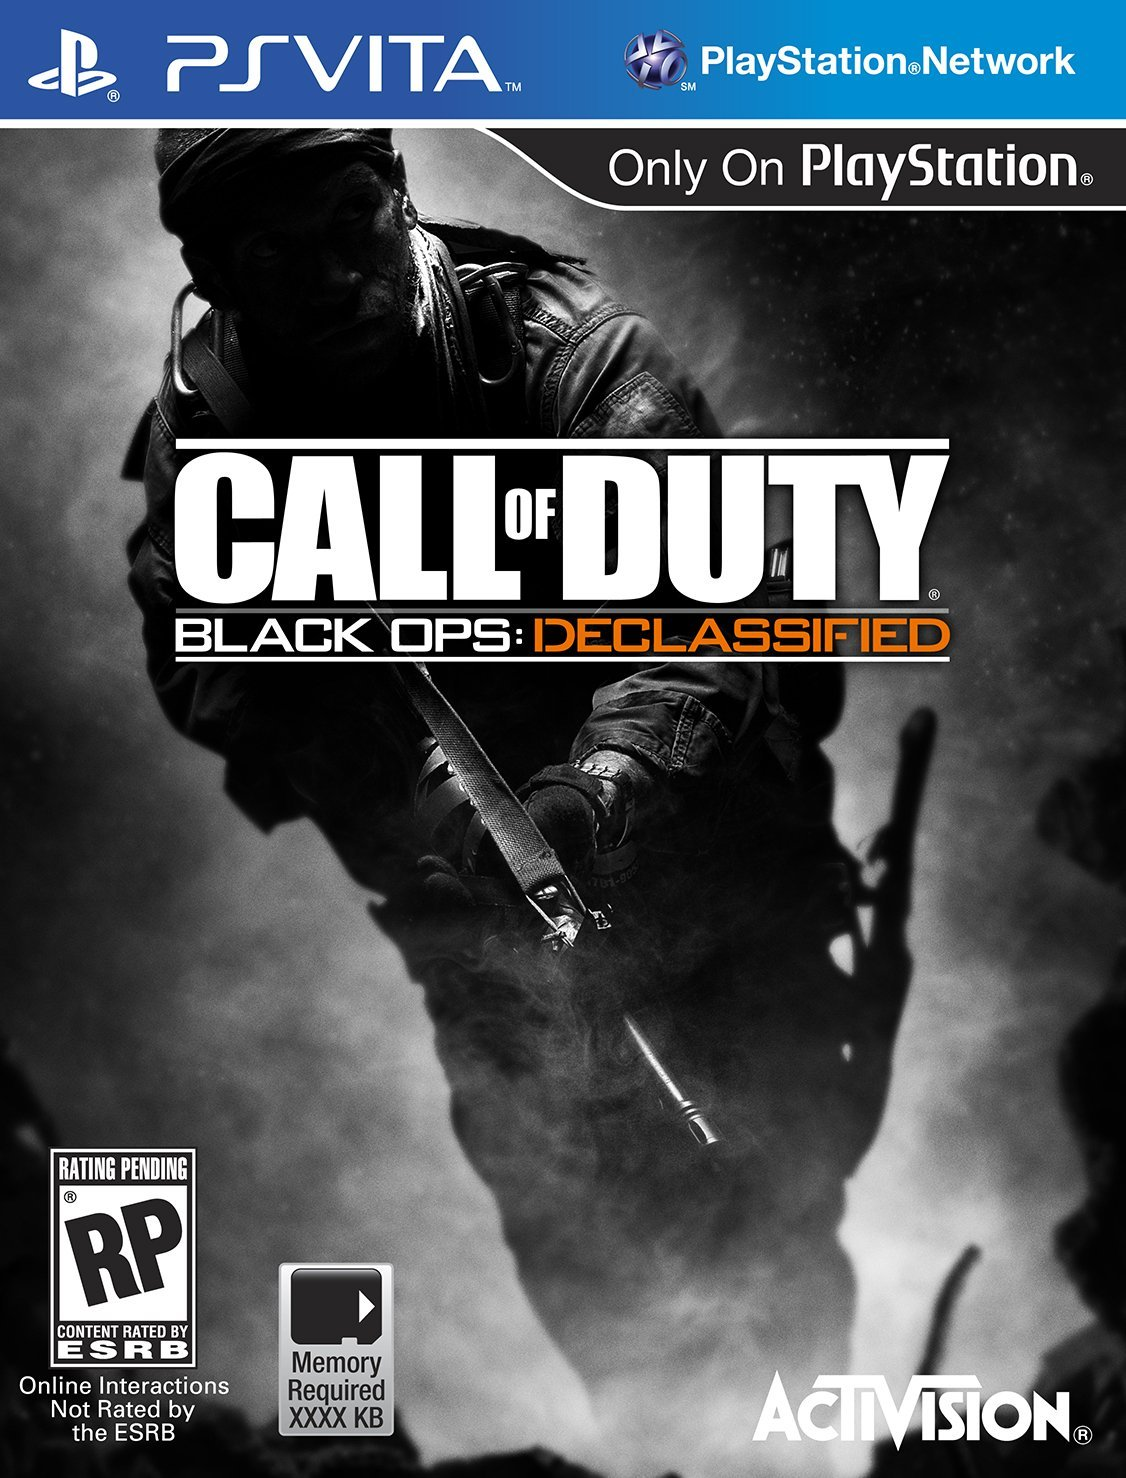 PSV: CALL OF DUTY: BLACK OPS DECLASSIFIED (GAME)